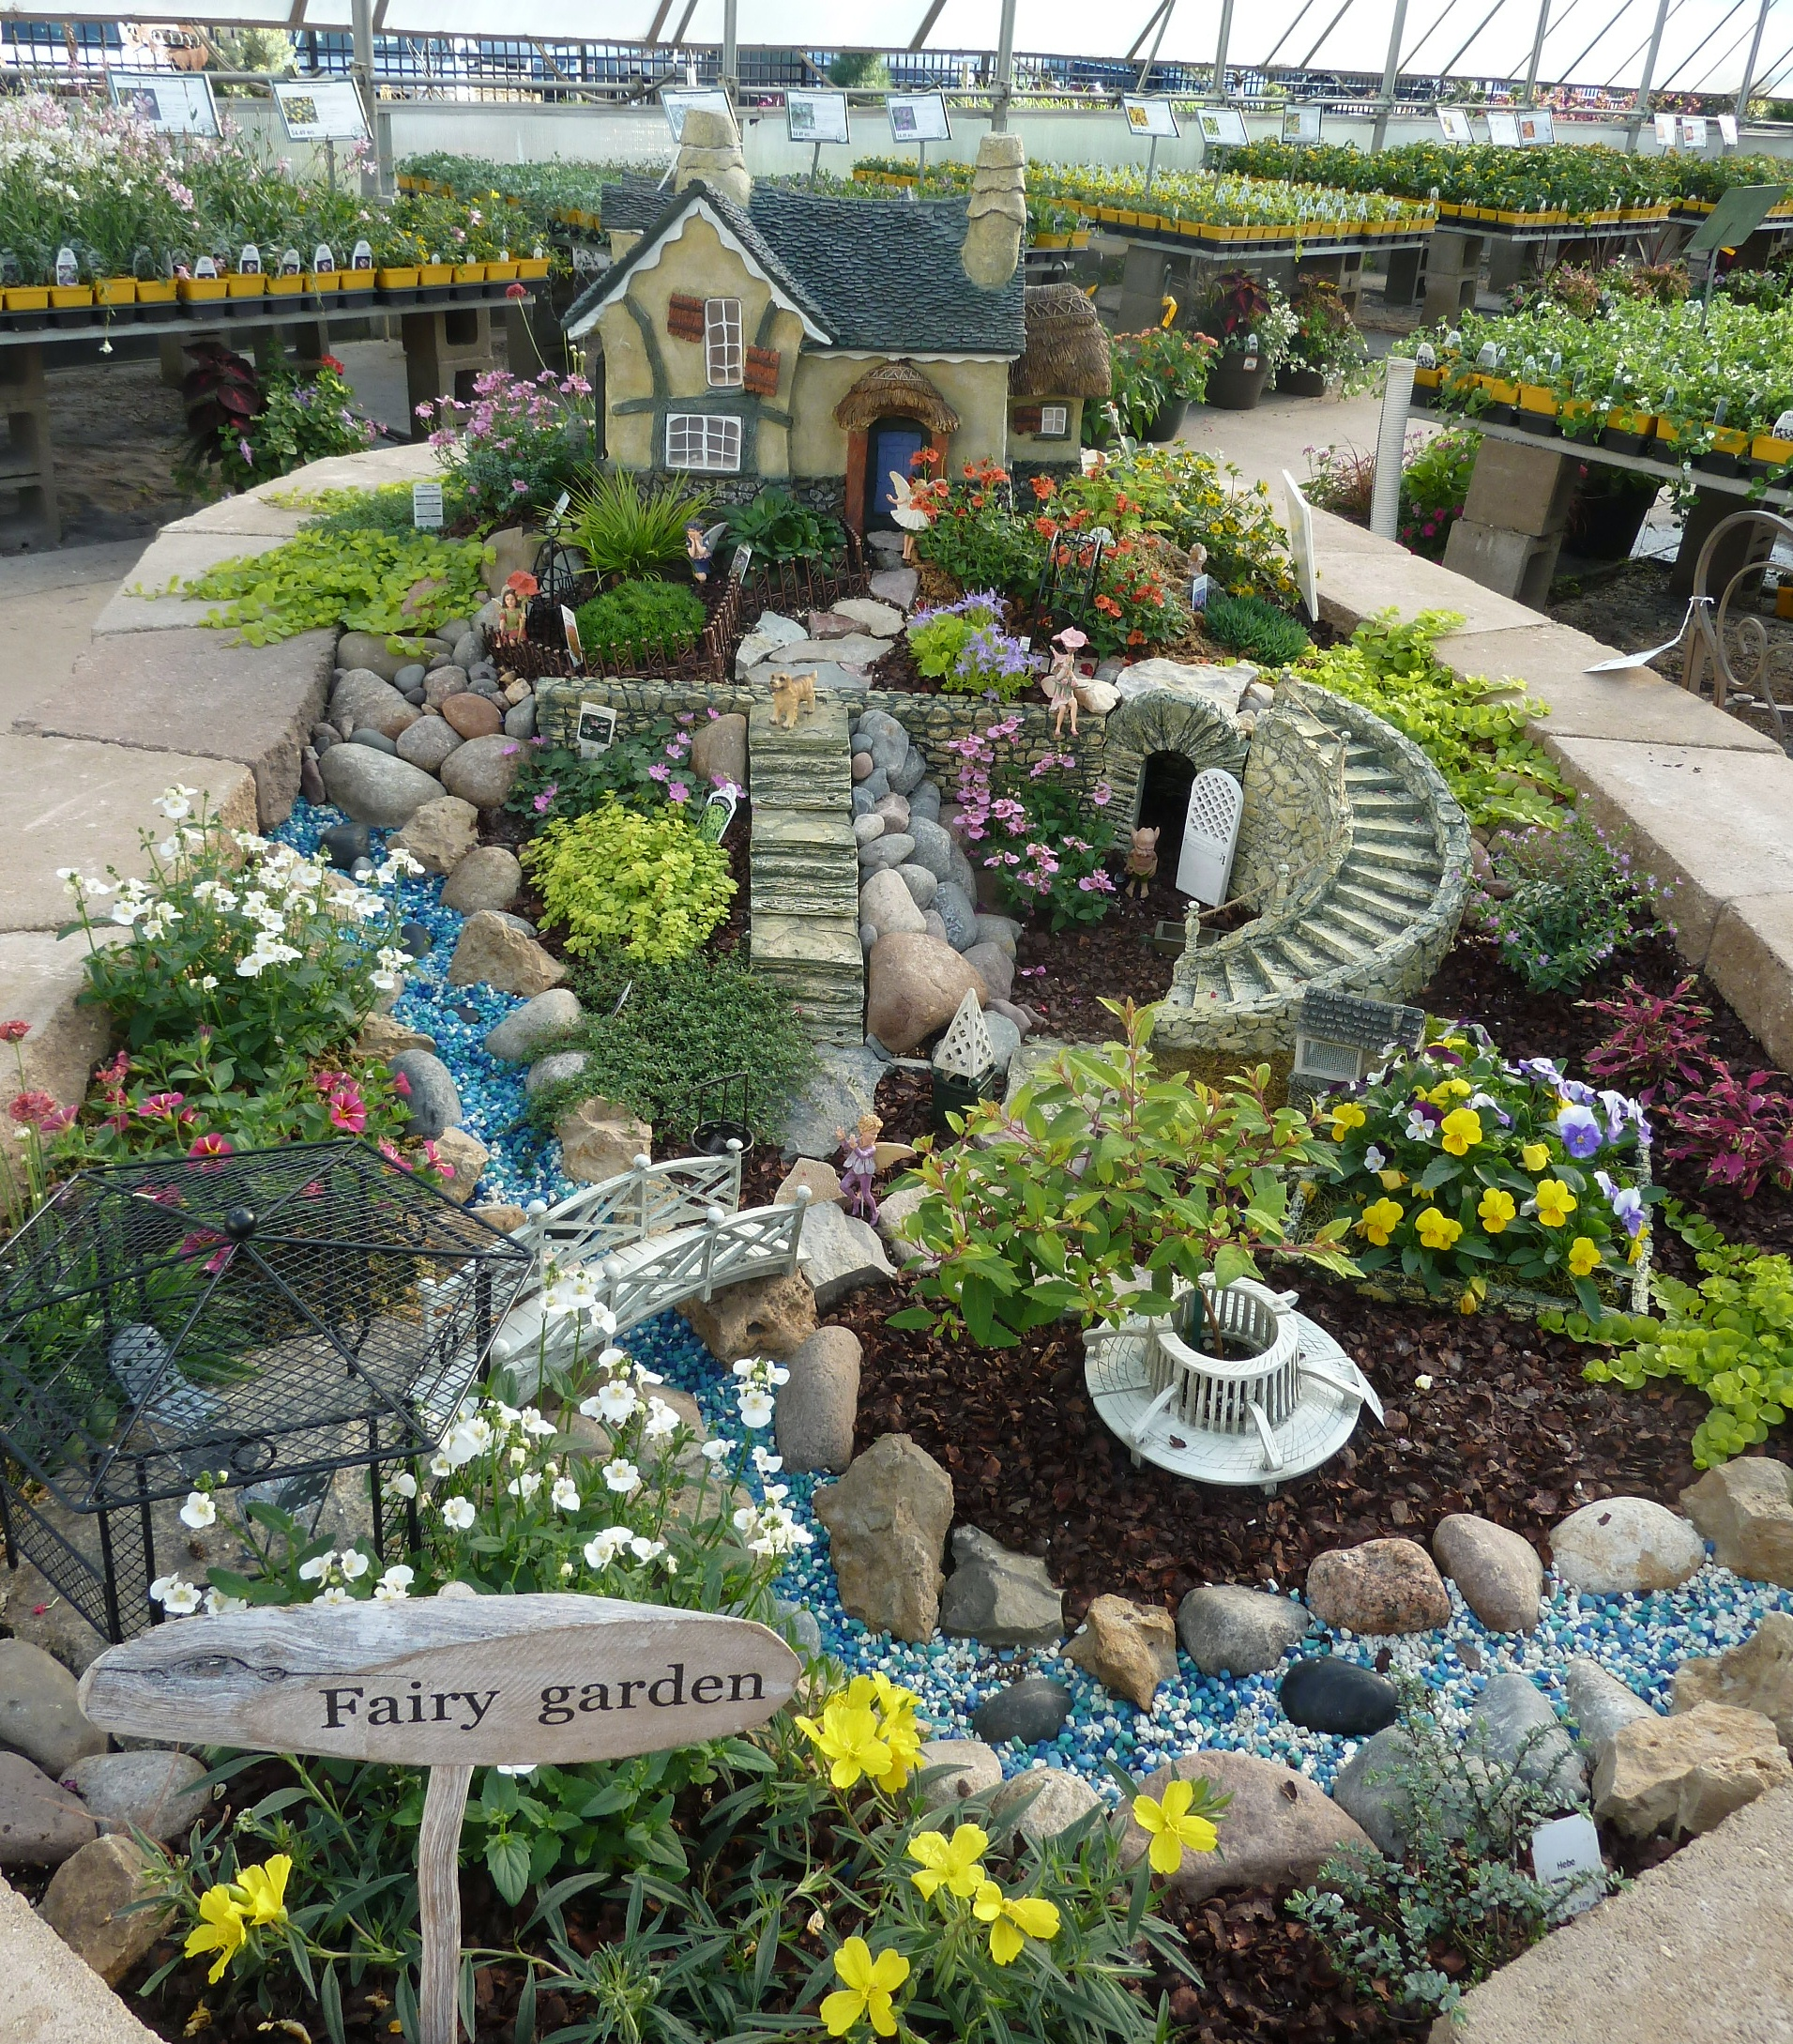 Edible landscaping and fairy gardens the fruit doctor for Interesting garden designs